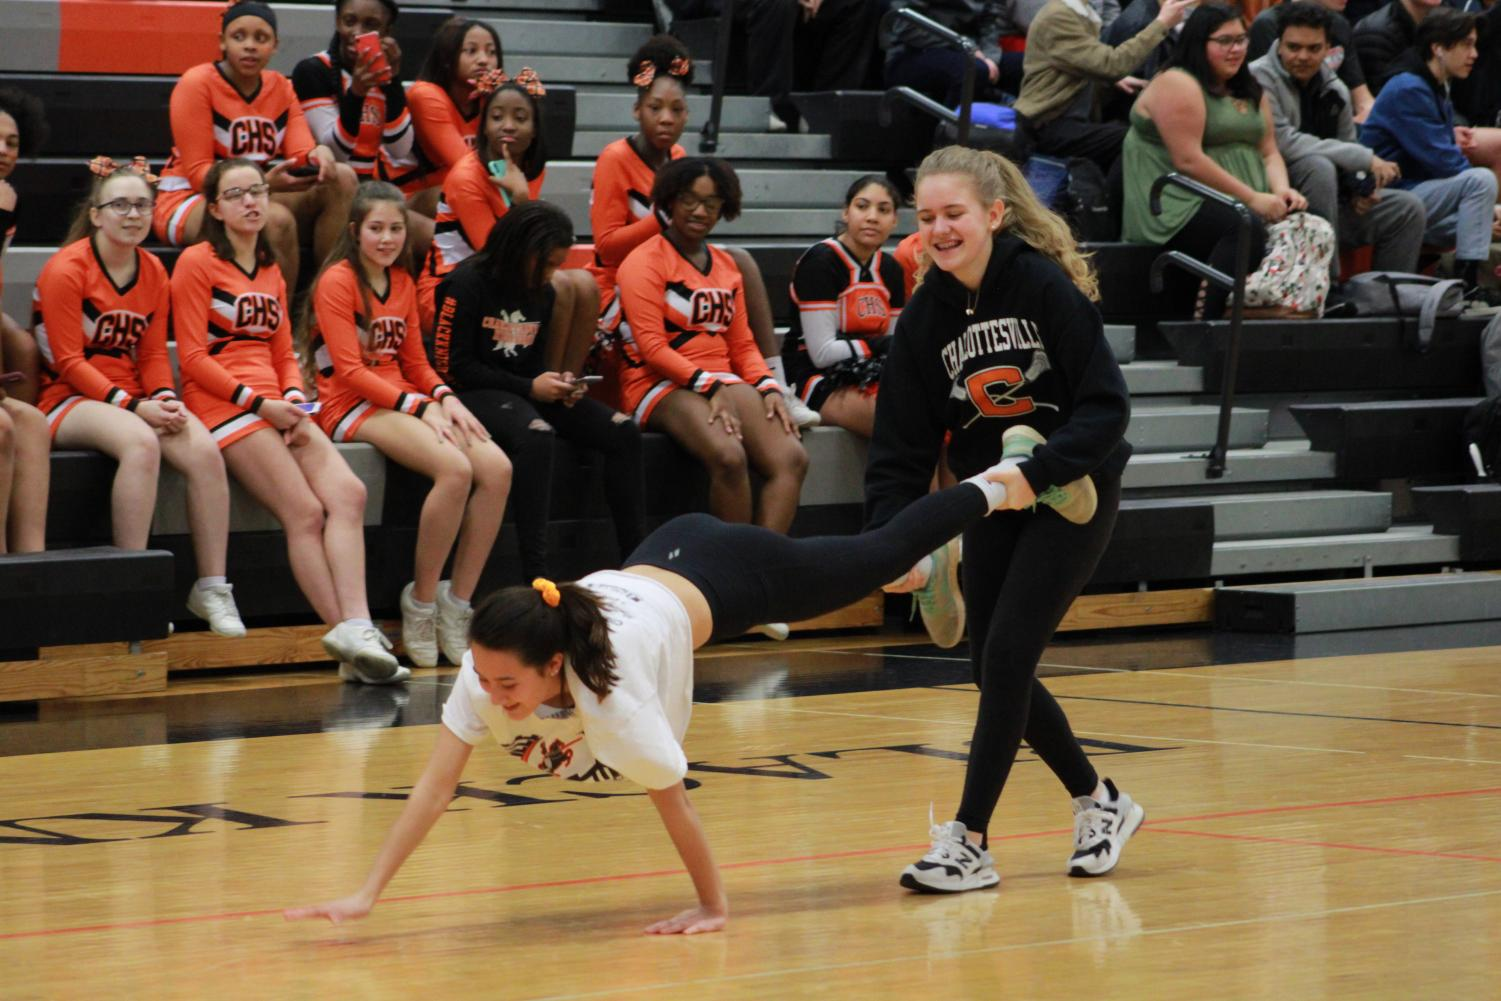 Isabelle Buckner and Imogen Armstrong compete in one of the annual pep rally activities.